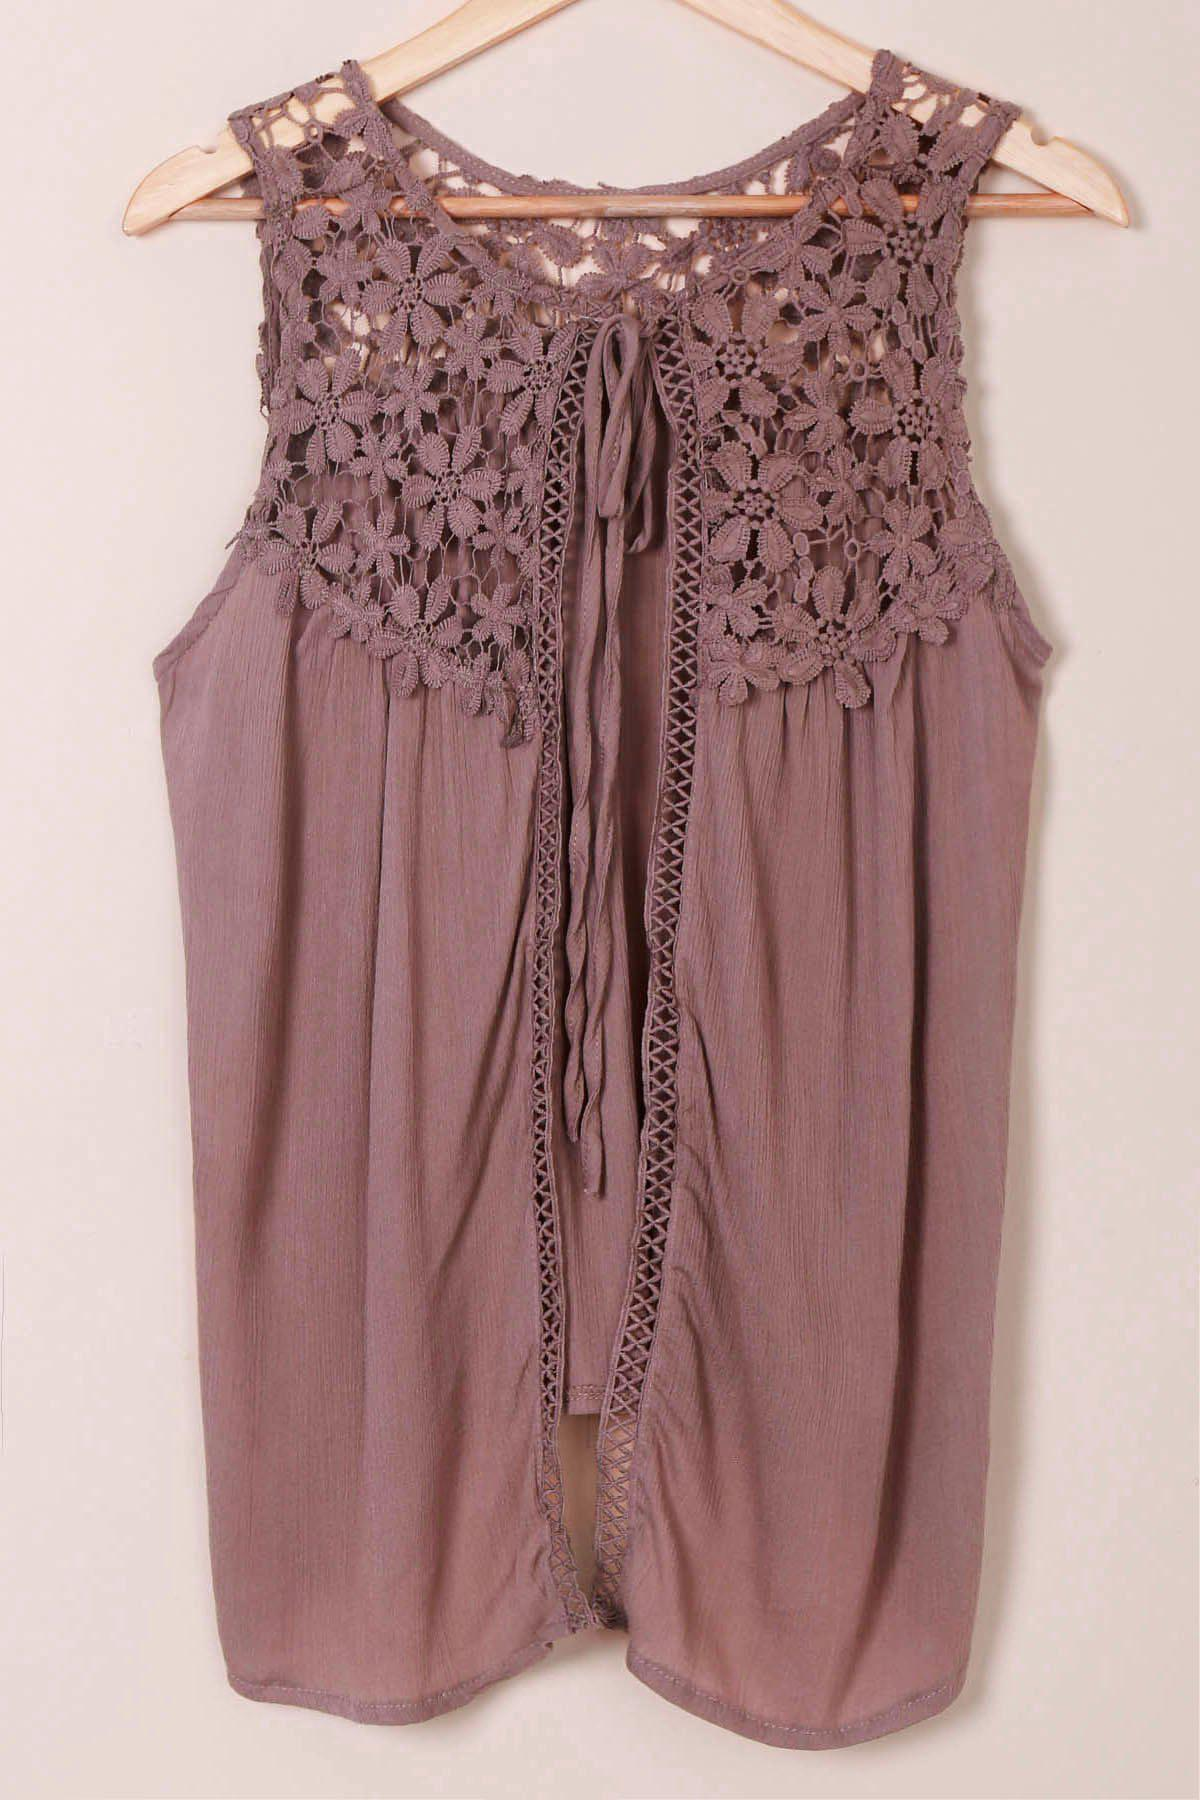 Refreshing Scoop Neck Crochet Lace Splicing Sleeveless Tank Top For Women - LIGHT BROWN M